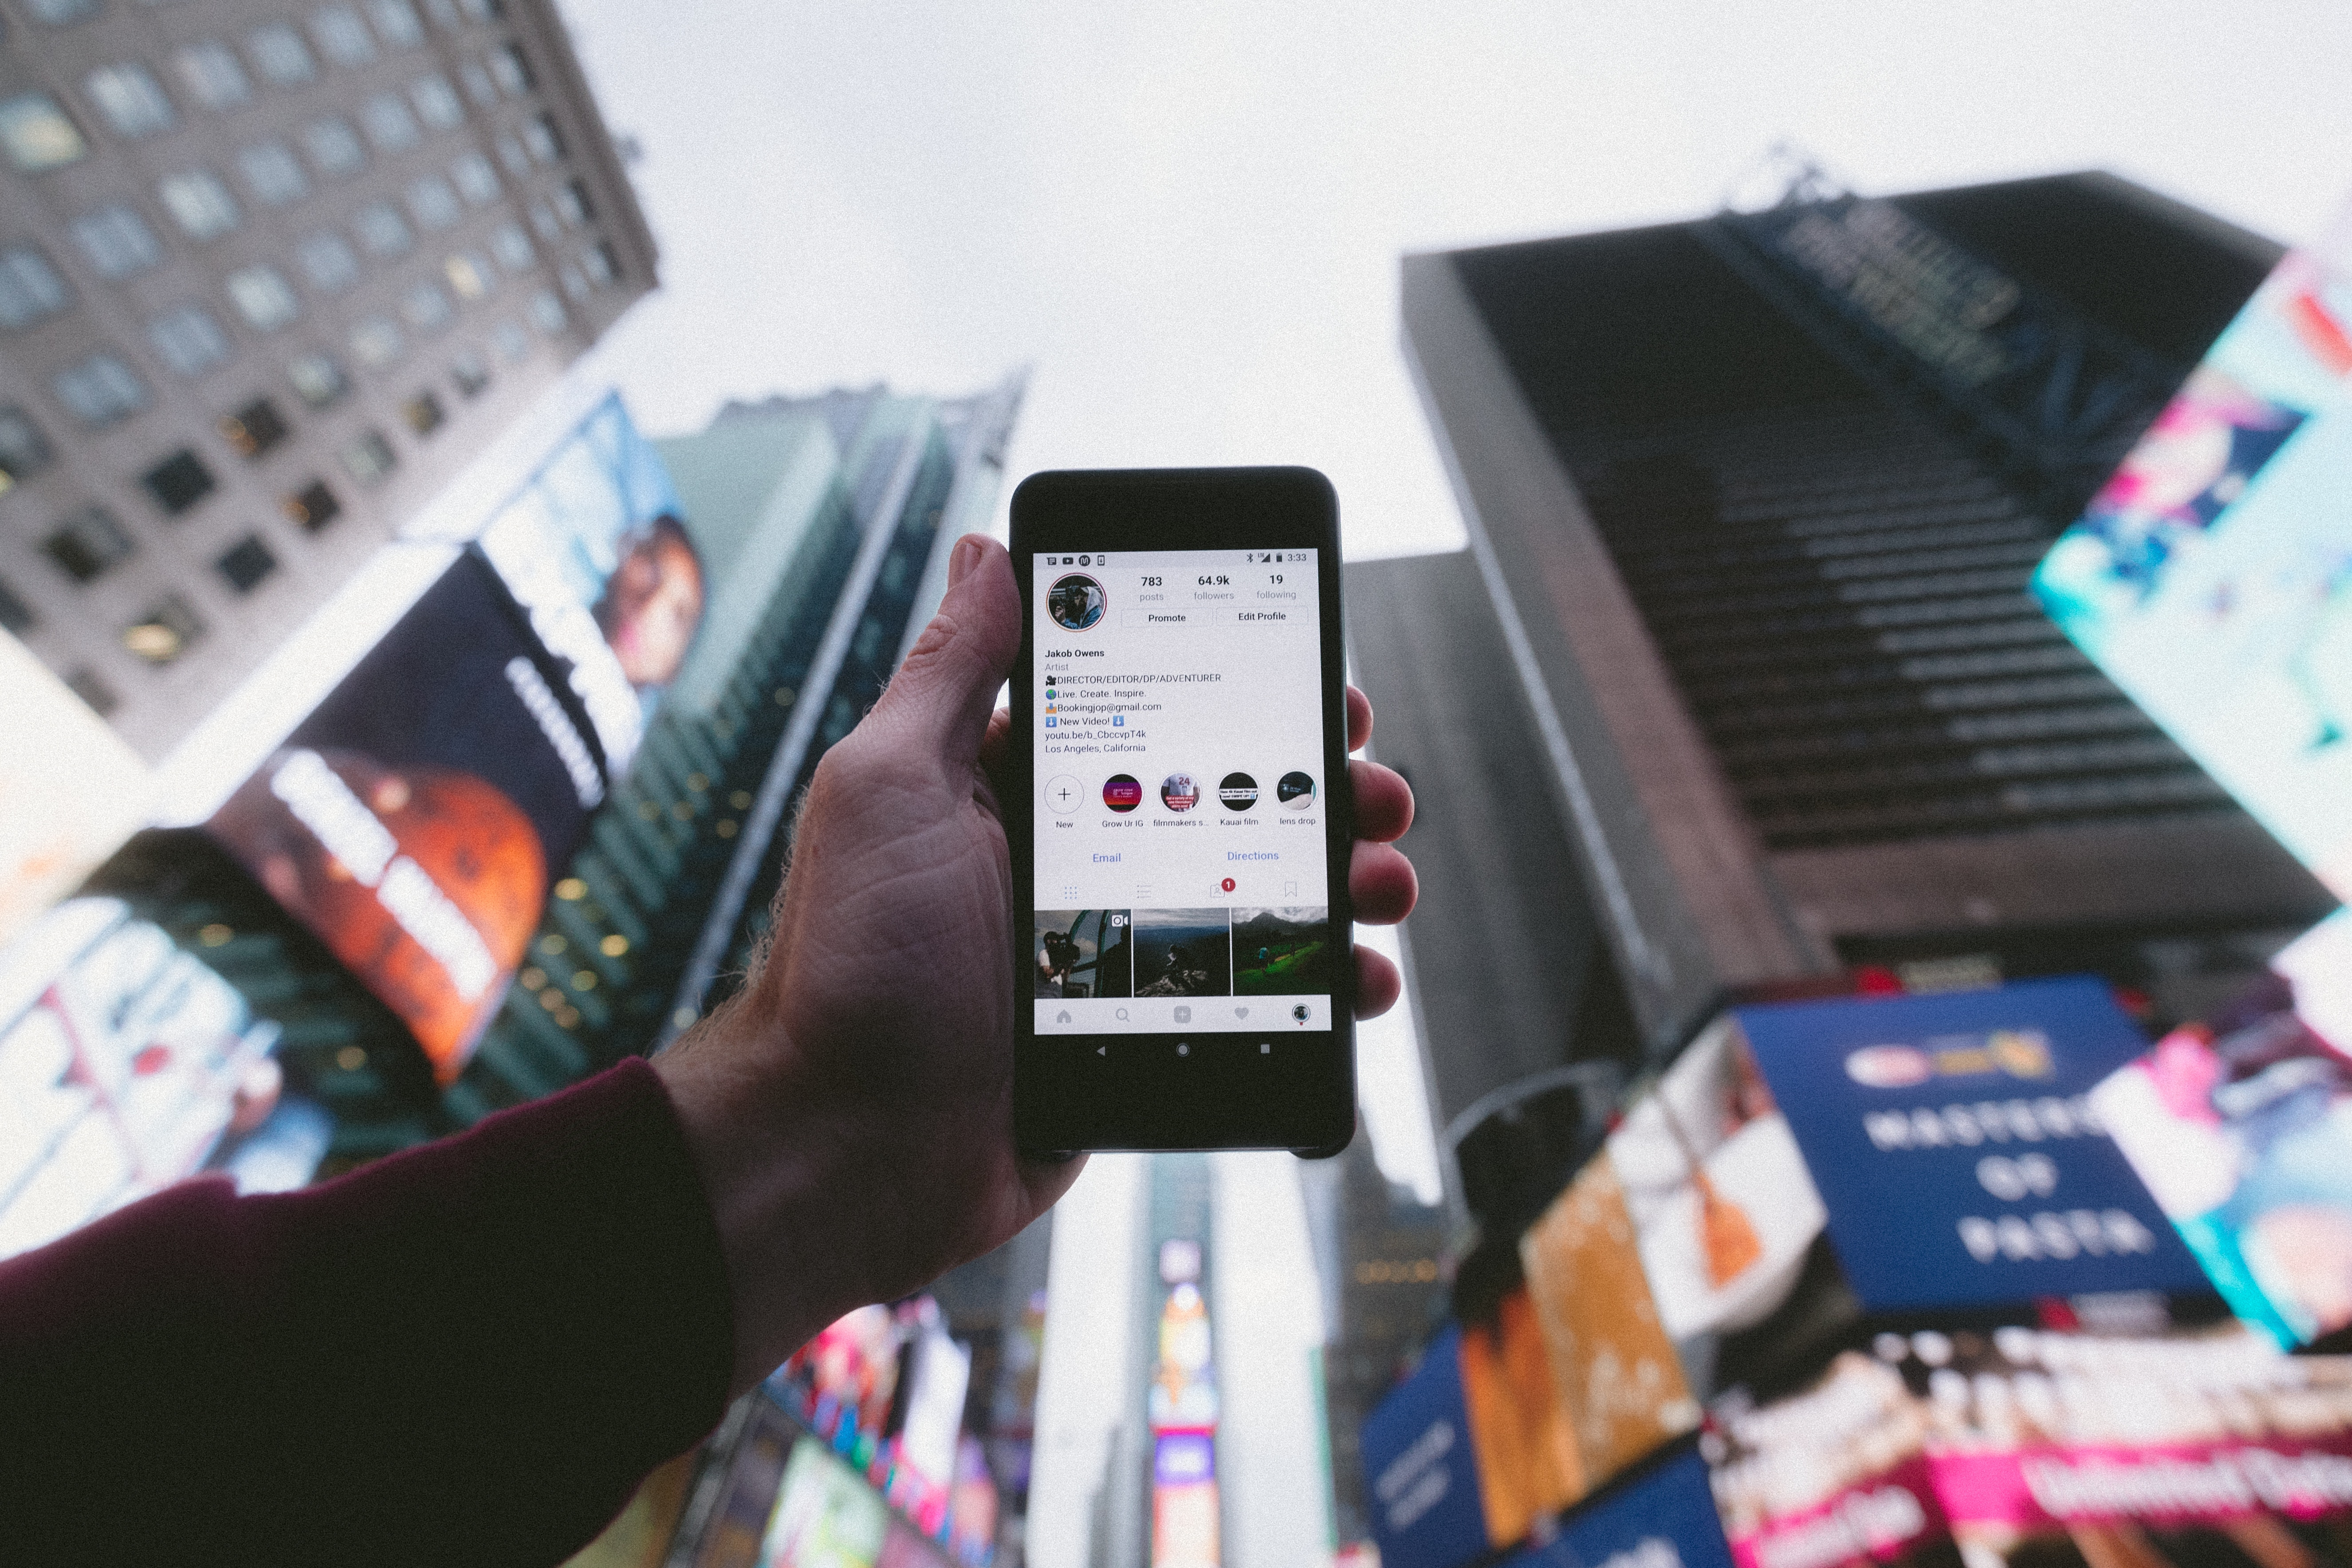 Person holding phone in front of buildings